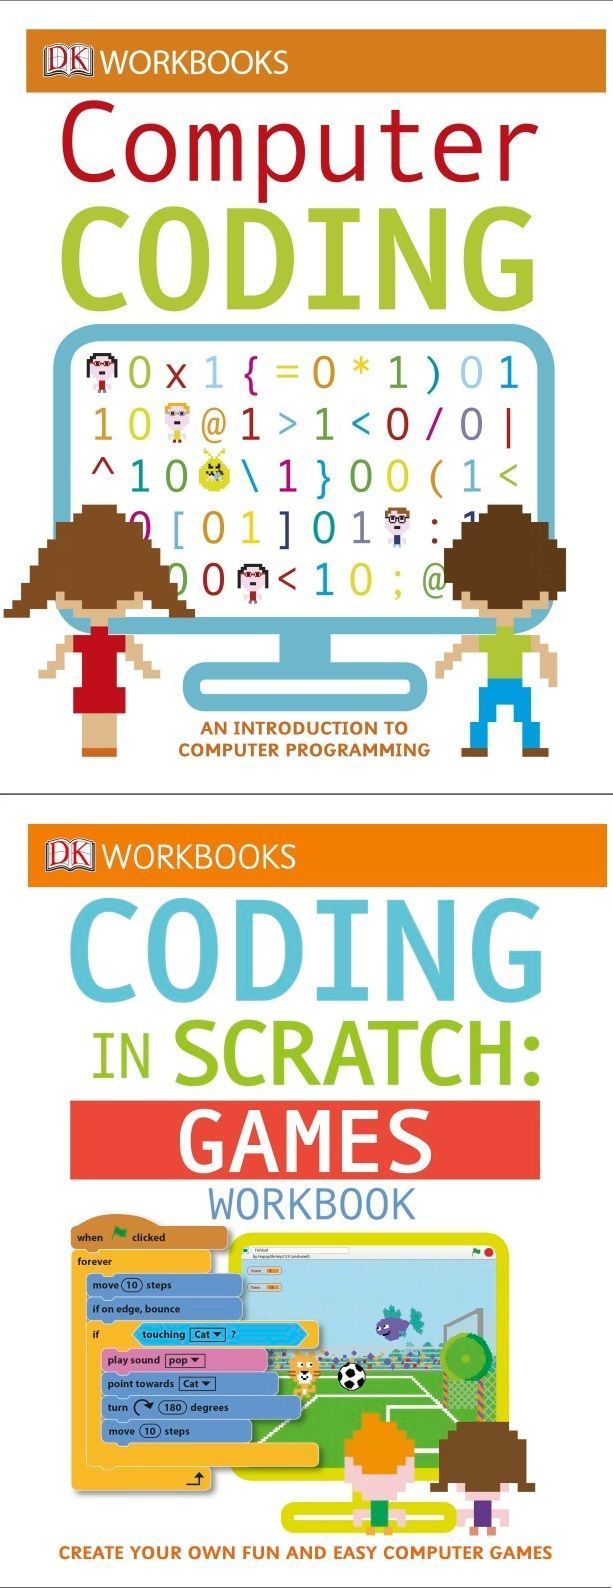 Try one of DK's awesome series of interactive coding workbooks. Each one offers a series of exercises and projects designed to get kids using the computer coding concepts they're learning.